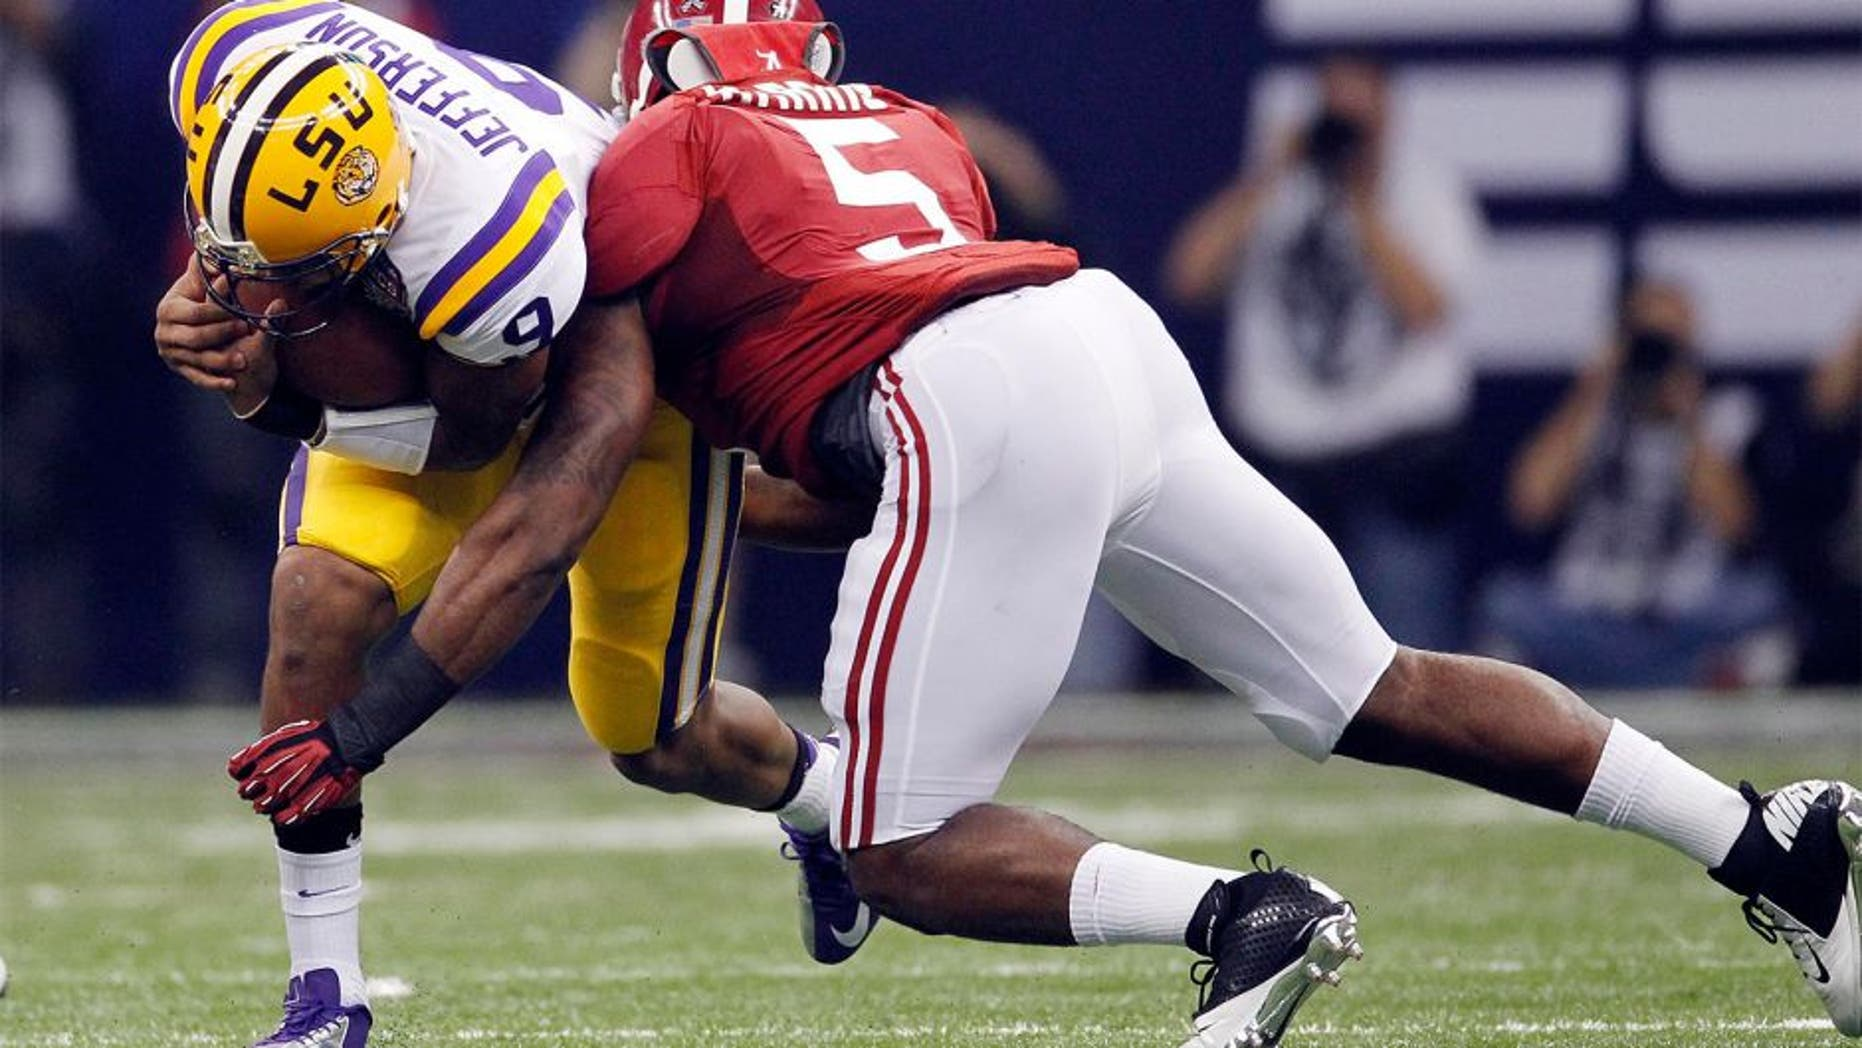 Jan 9, 2012; New Orleans, LA, USA; LSU Tigers quarterback Jordan Jefferson (9) is tackled by Alabama Crimson Tide linebacker Jerrell Harris (5) during the first half of the 2012 BCS National Championship game at the Mercedes-Benz Superdome. Mandatory Credit: Derick E. Hingle-USA TODAY Sports